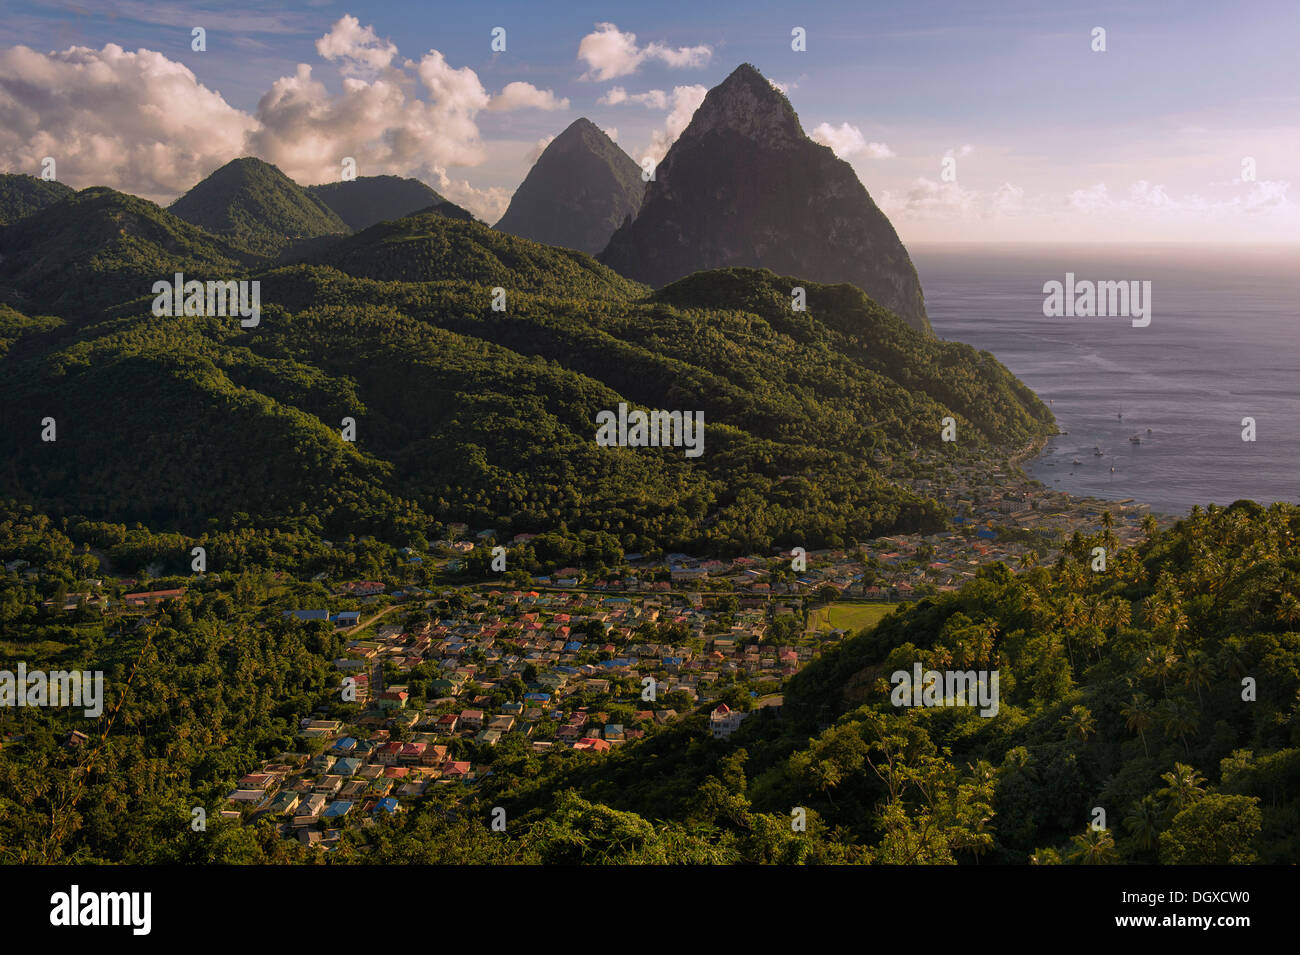 Gros Piton and Petit Piton, volcanic cores, in front of the village of Soufrière, Soufrière, Pitons-Schutzgebiet, Karibik - Stock Image